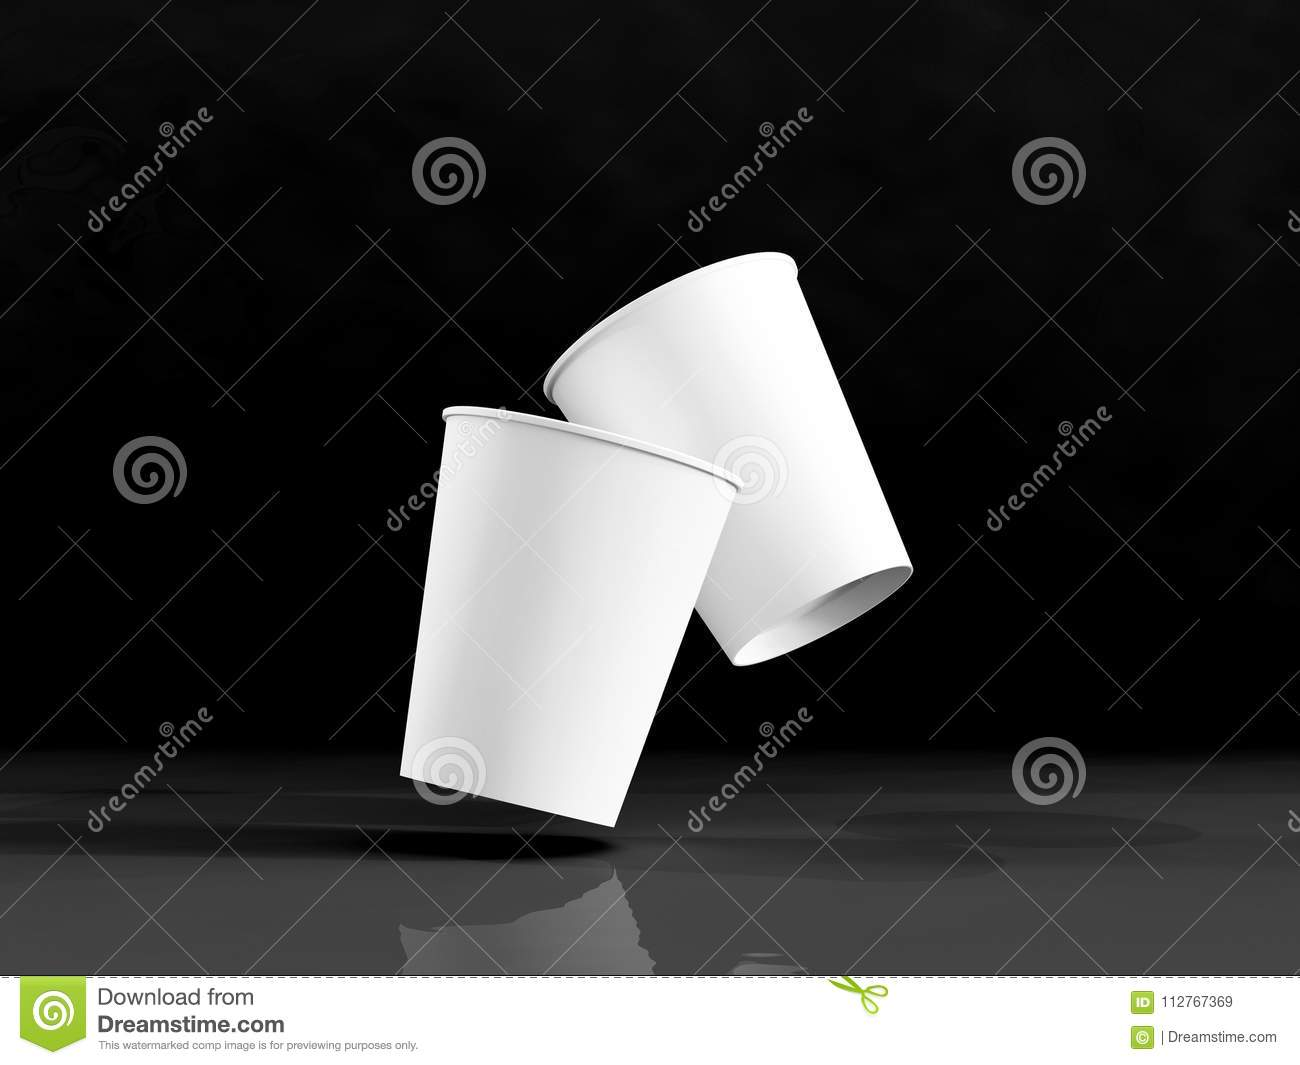 3d Model Of Paper Cups On The Plane Under Natural Light  Black B